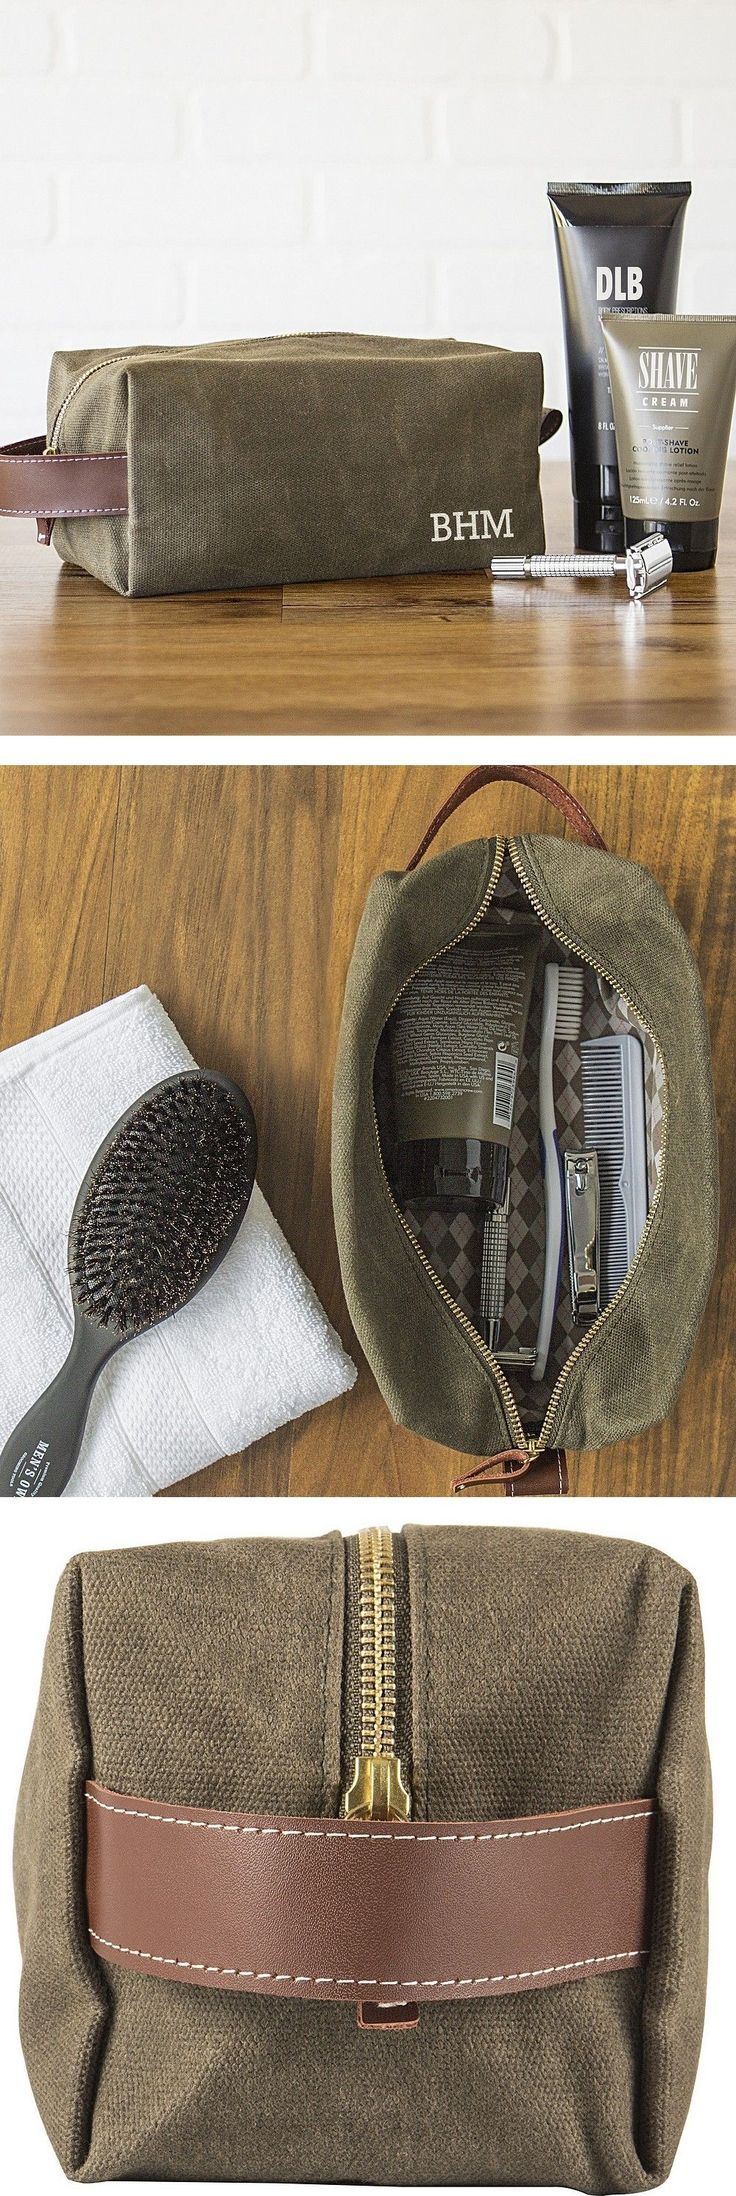 Men's toiletry bags make memorable and useful groomsmen gifts every guy in your wedding party will appreciate. Turn each toiletry bag into a dopp kit by adding a few items your best man or groomsman are sure to need like a lint brush, soap and toothbrush case. He can add his favorite shaving cream, aftershave, soap and razors. This waxed canvas toiletry travel bag is personalized with the man's initials for a unique travel dopp kit any guy on your gift list will love.